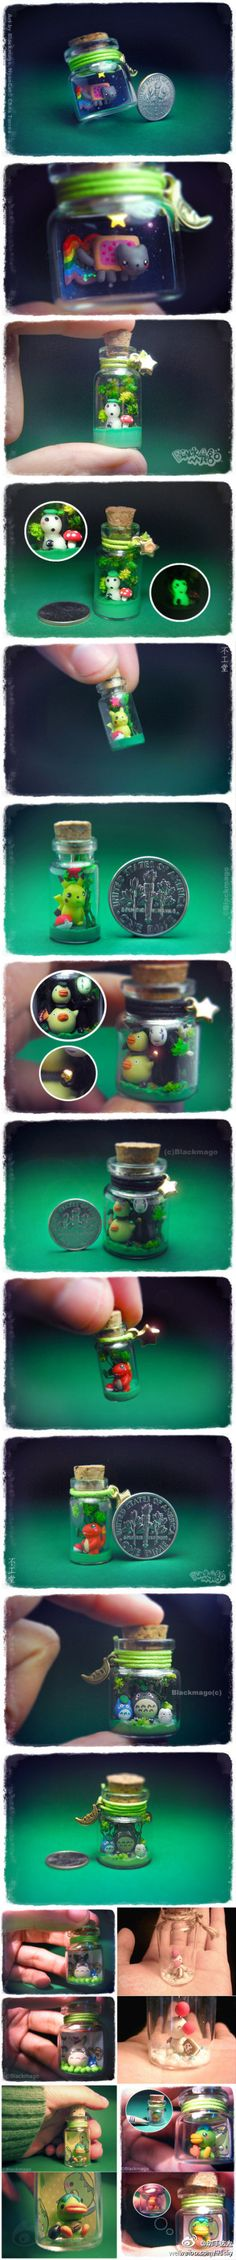 I never would have thought to make a little scene in a jar. Great for younger kids who can put it on their shelf to look at